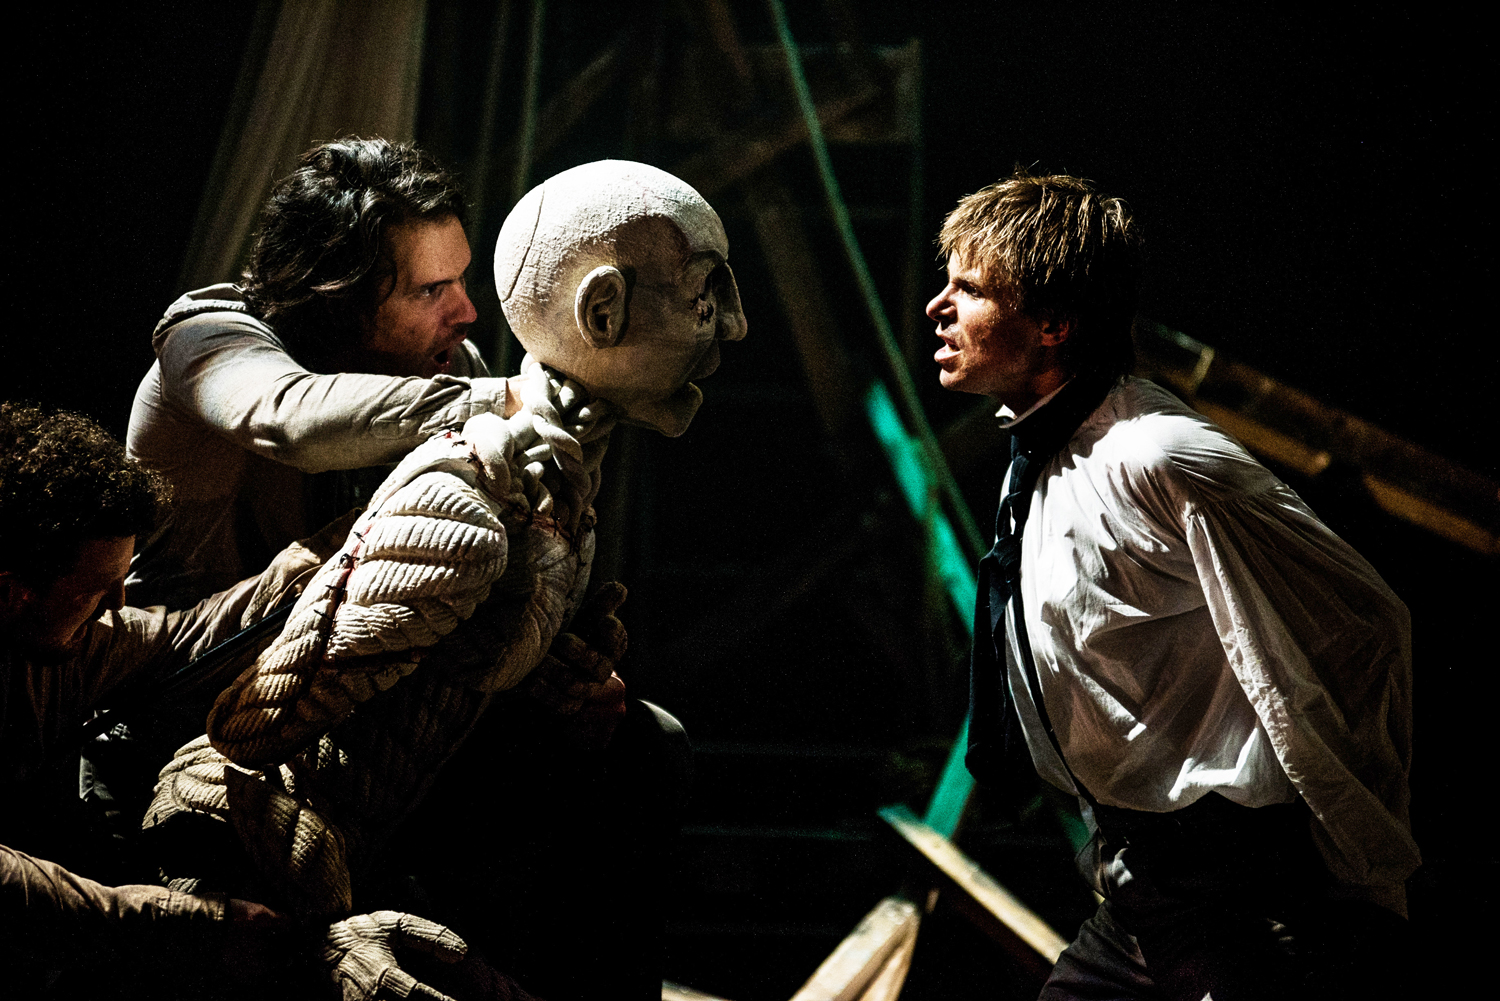 """Ben Warwick's portrayal of Frankenstein's growing psychosis and self-destruction is never over-played. His mercurial energy never wavers throughout the many stages leading to Frankenstein's inevitable cataclysmic end and the production benefits greatly from such a robust performer its central role."""